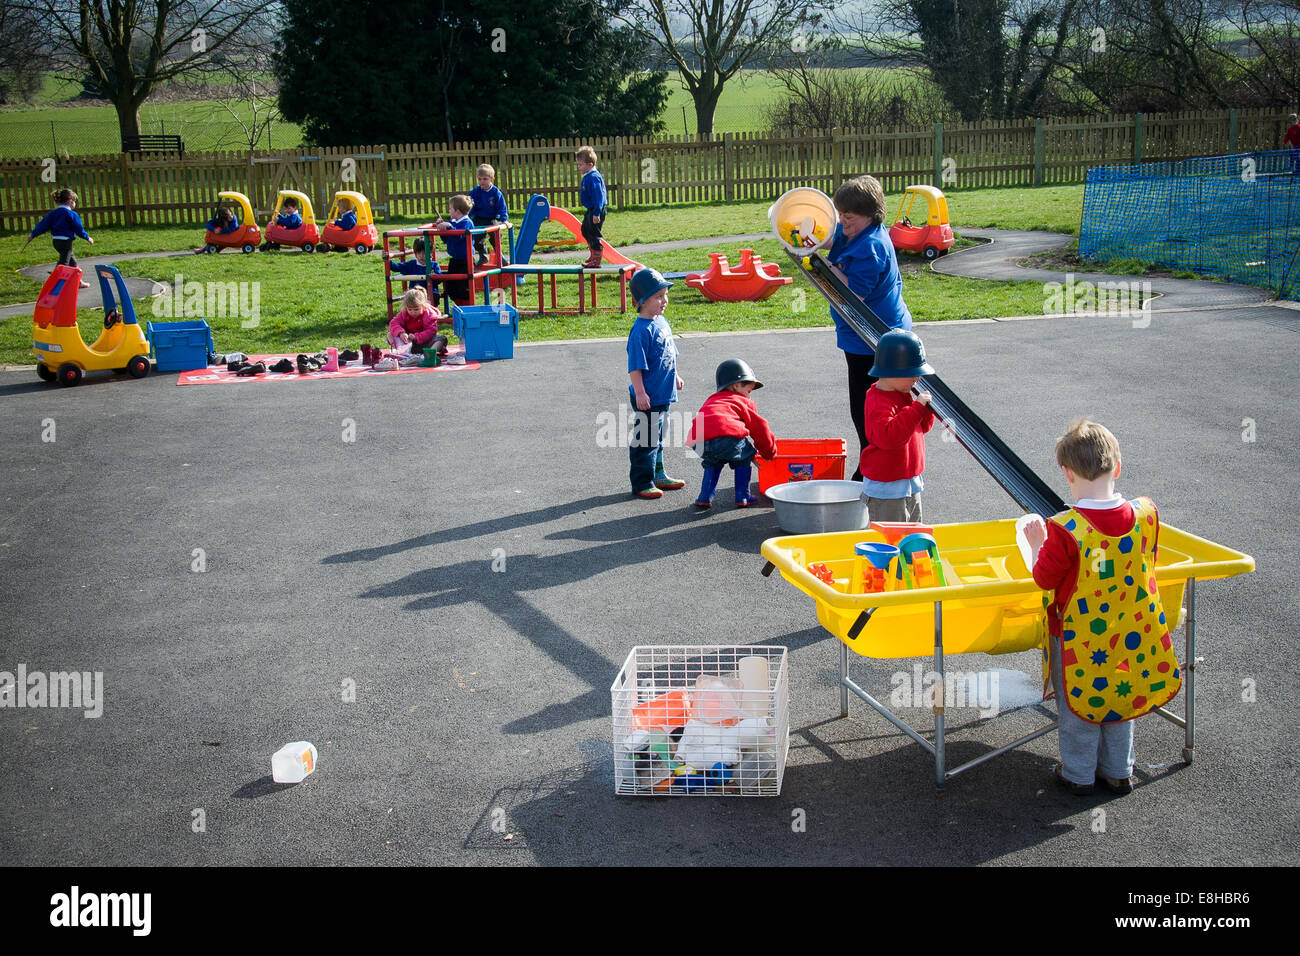 Image Result For Outside Playground Equipment For Schools